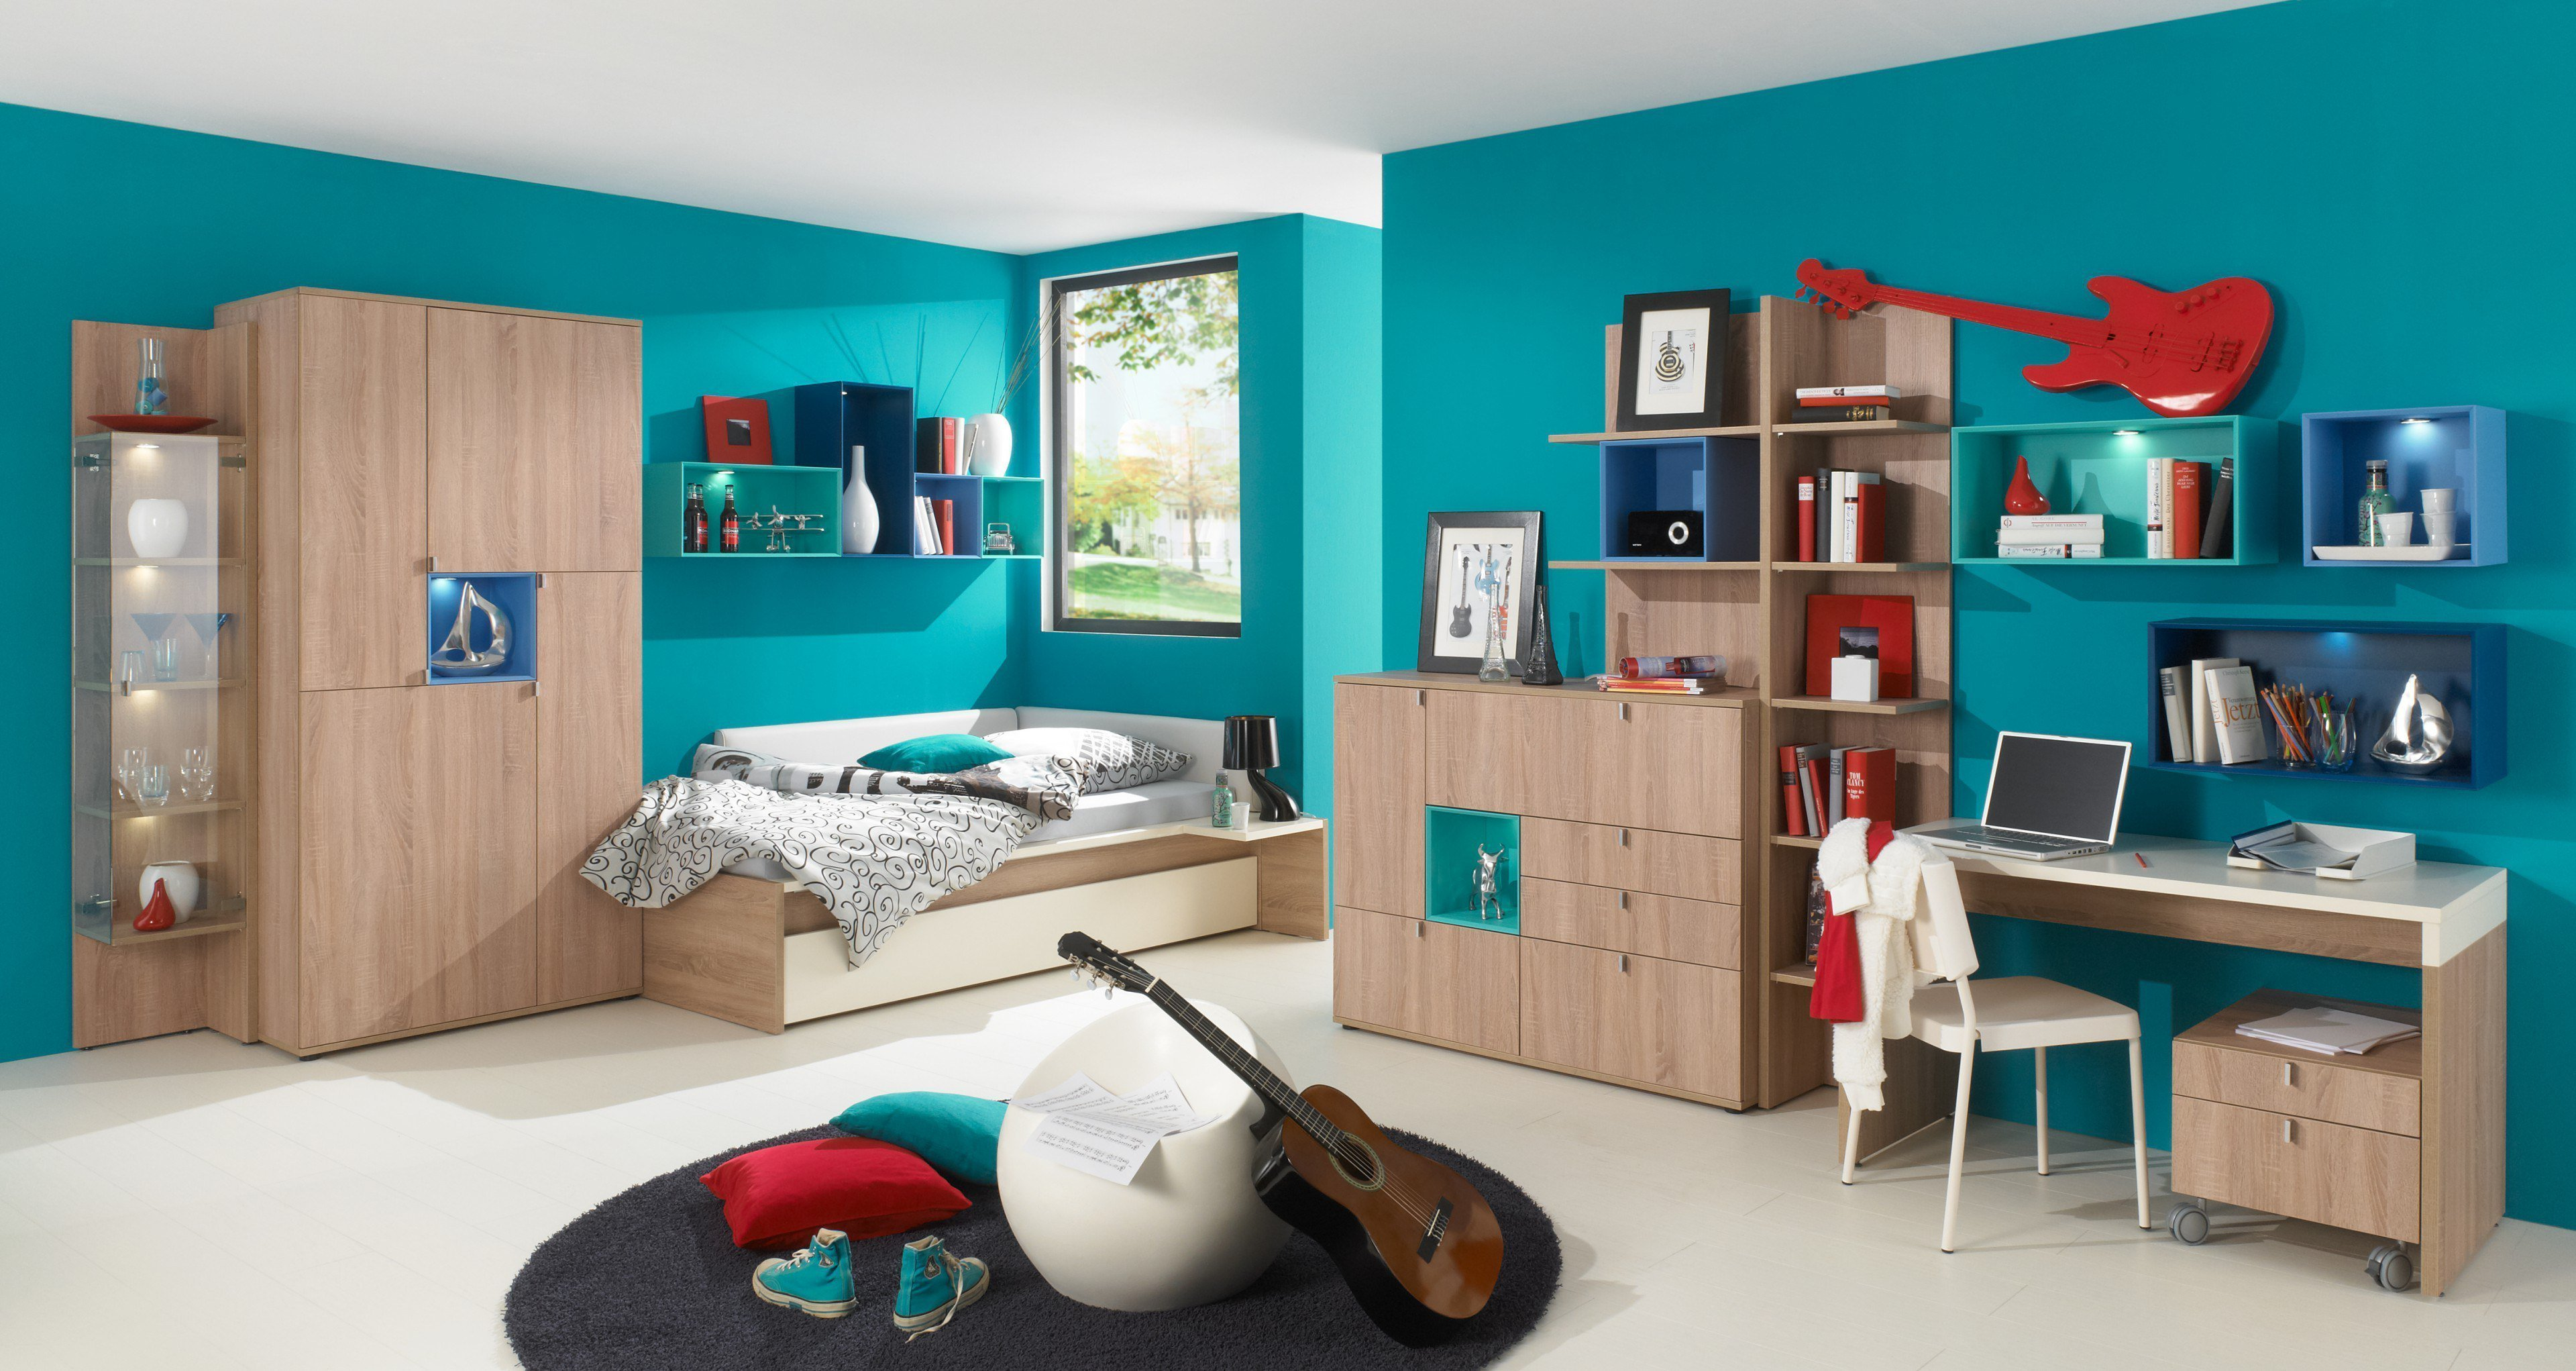 chatroom von rudolf jugendzimmer eiche nachbildung blau. Black Bedroom Furniture Sets. Home Design Ideas